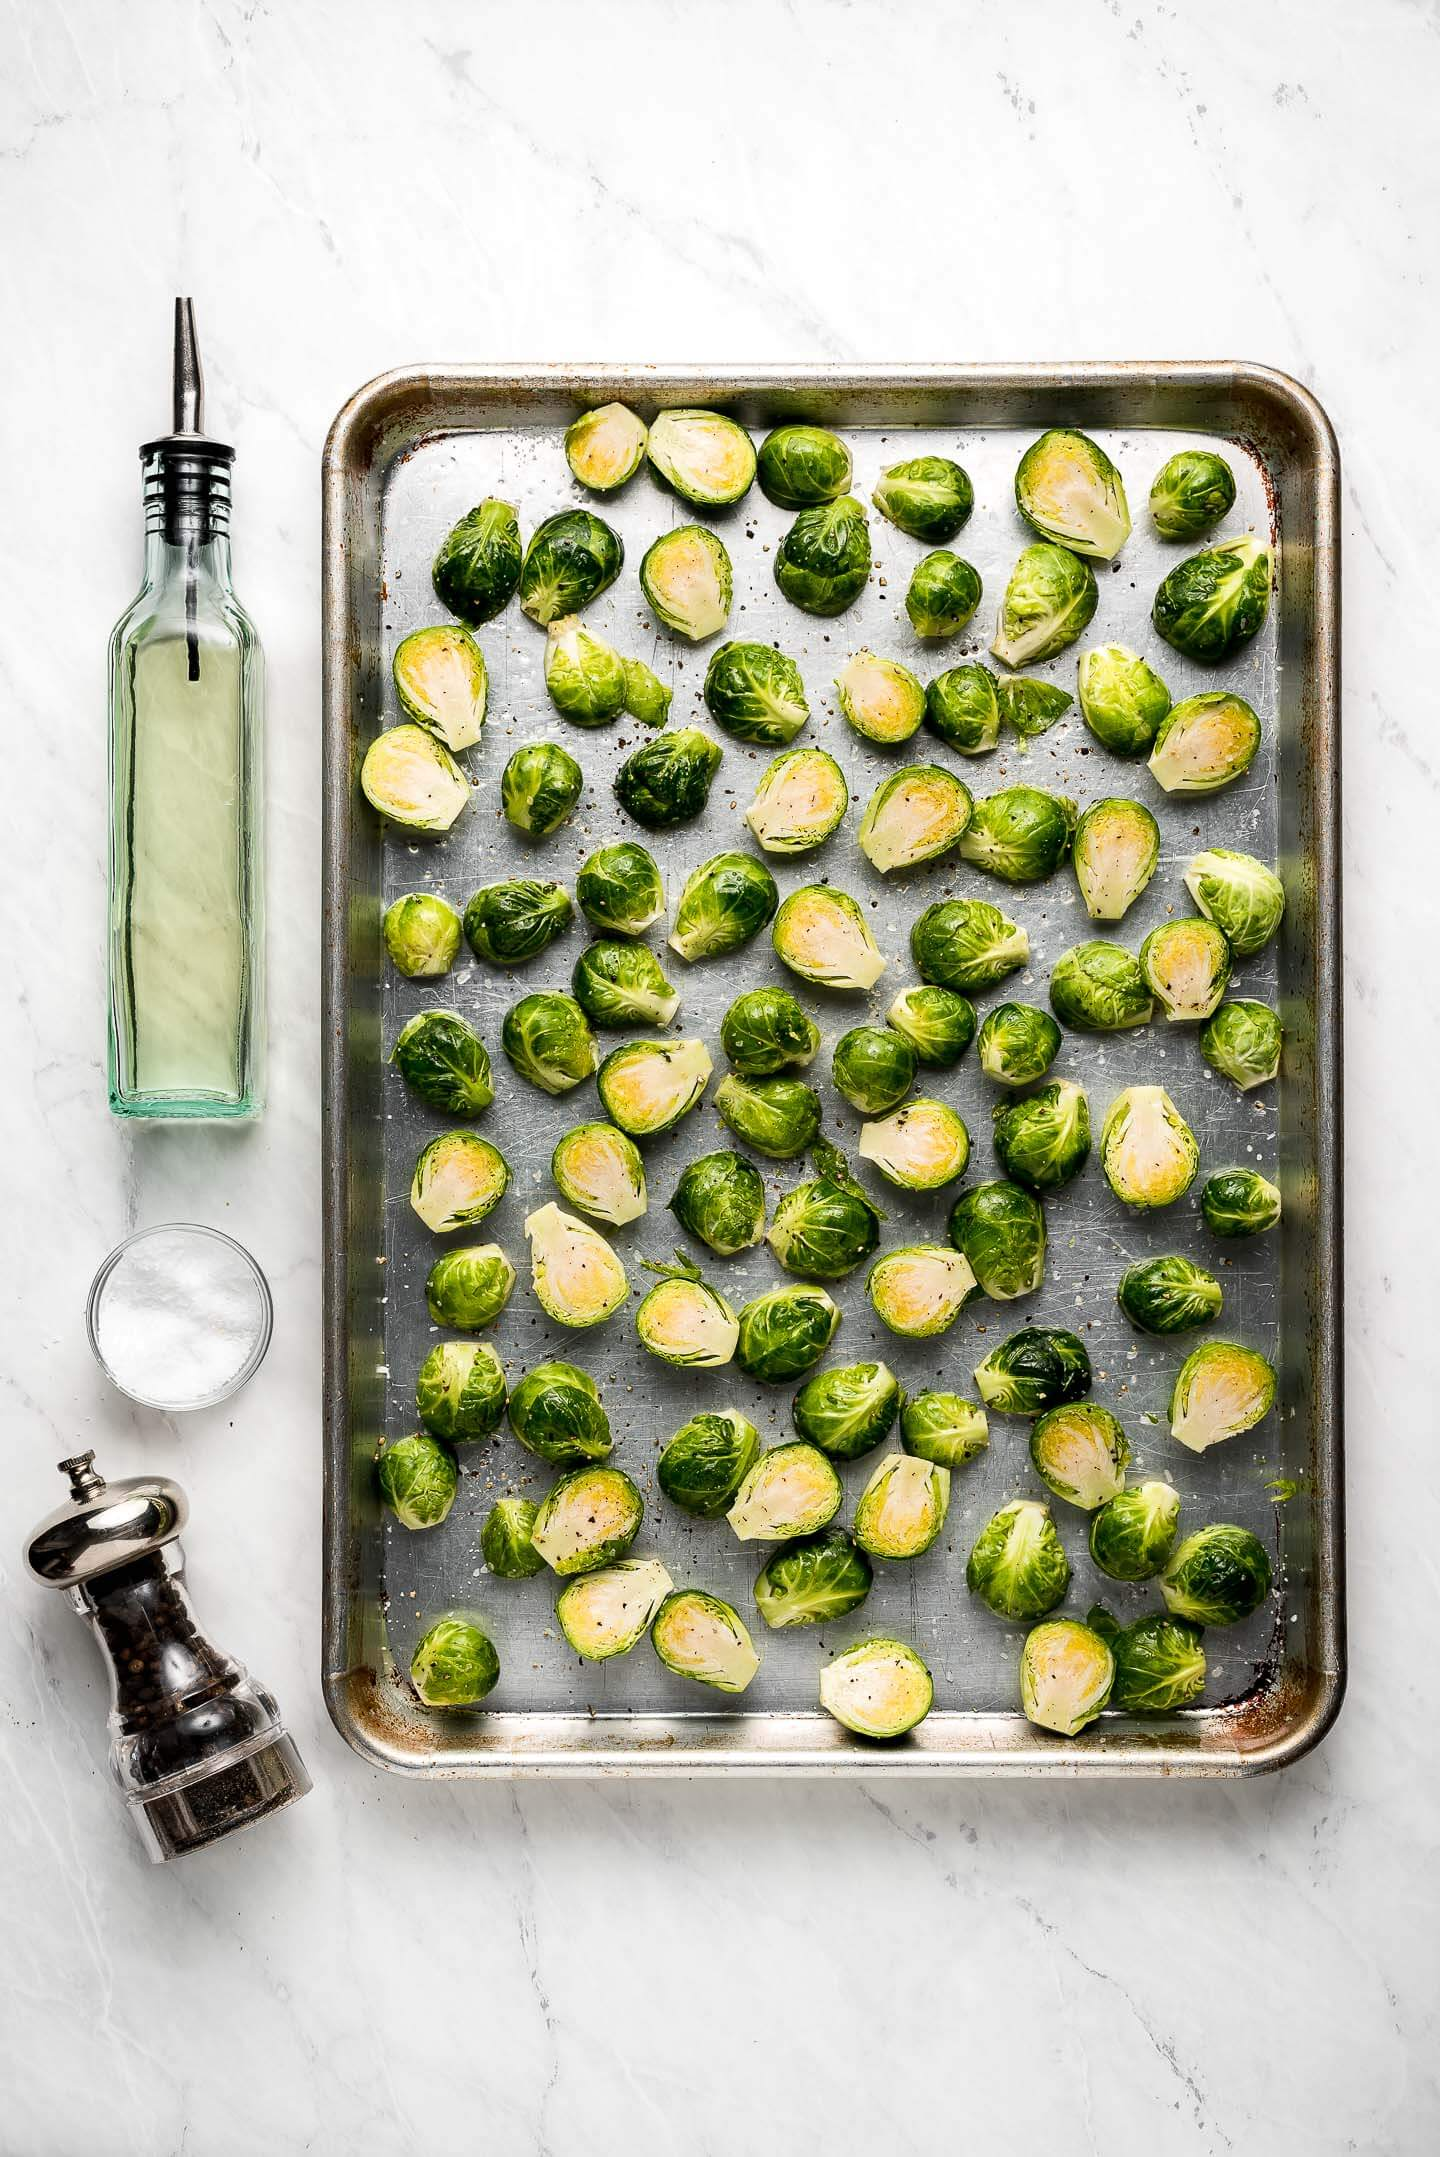 Raw brussels sprouts drizzled with oil on a baking sheet.